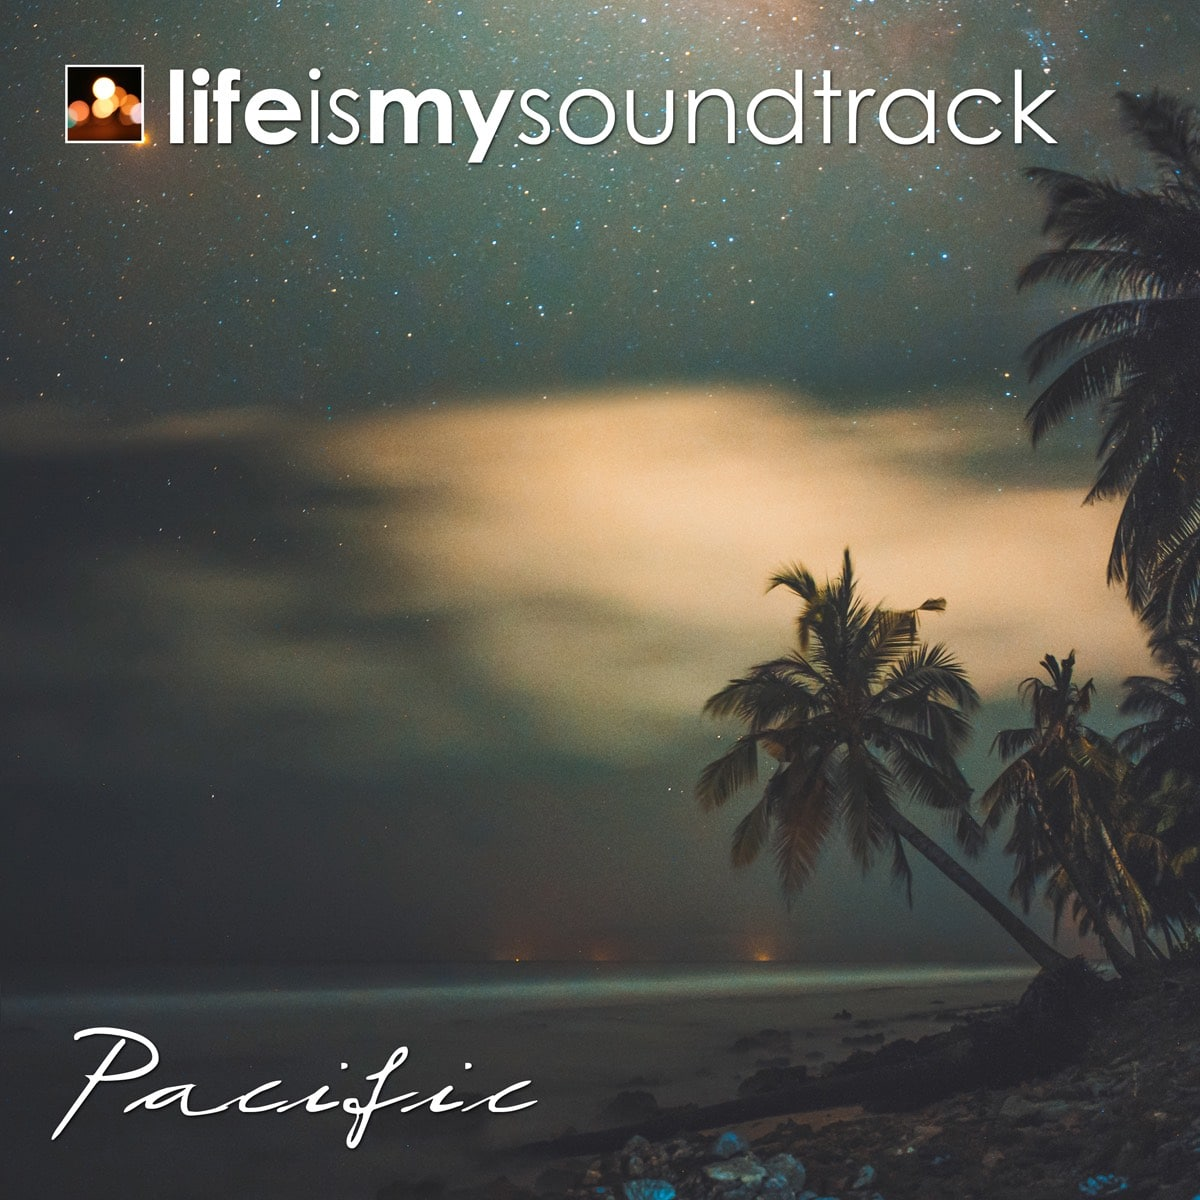 The album Pacific by Life Is My Soundtrack - Synthesizers combine with electronic beats in this downtempo tribute to the Pacific